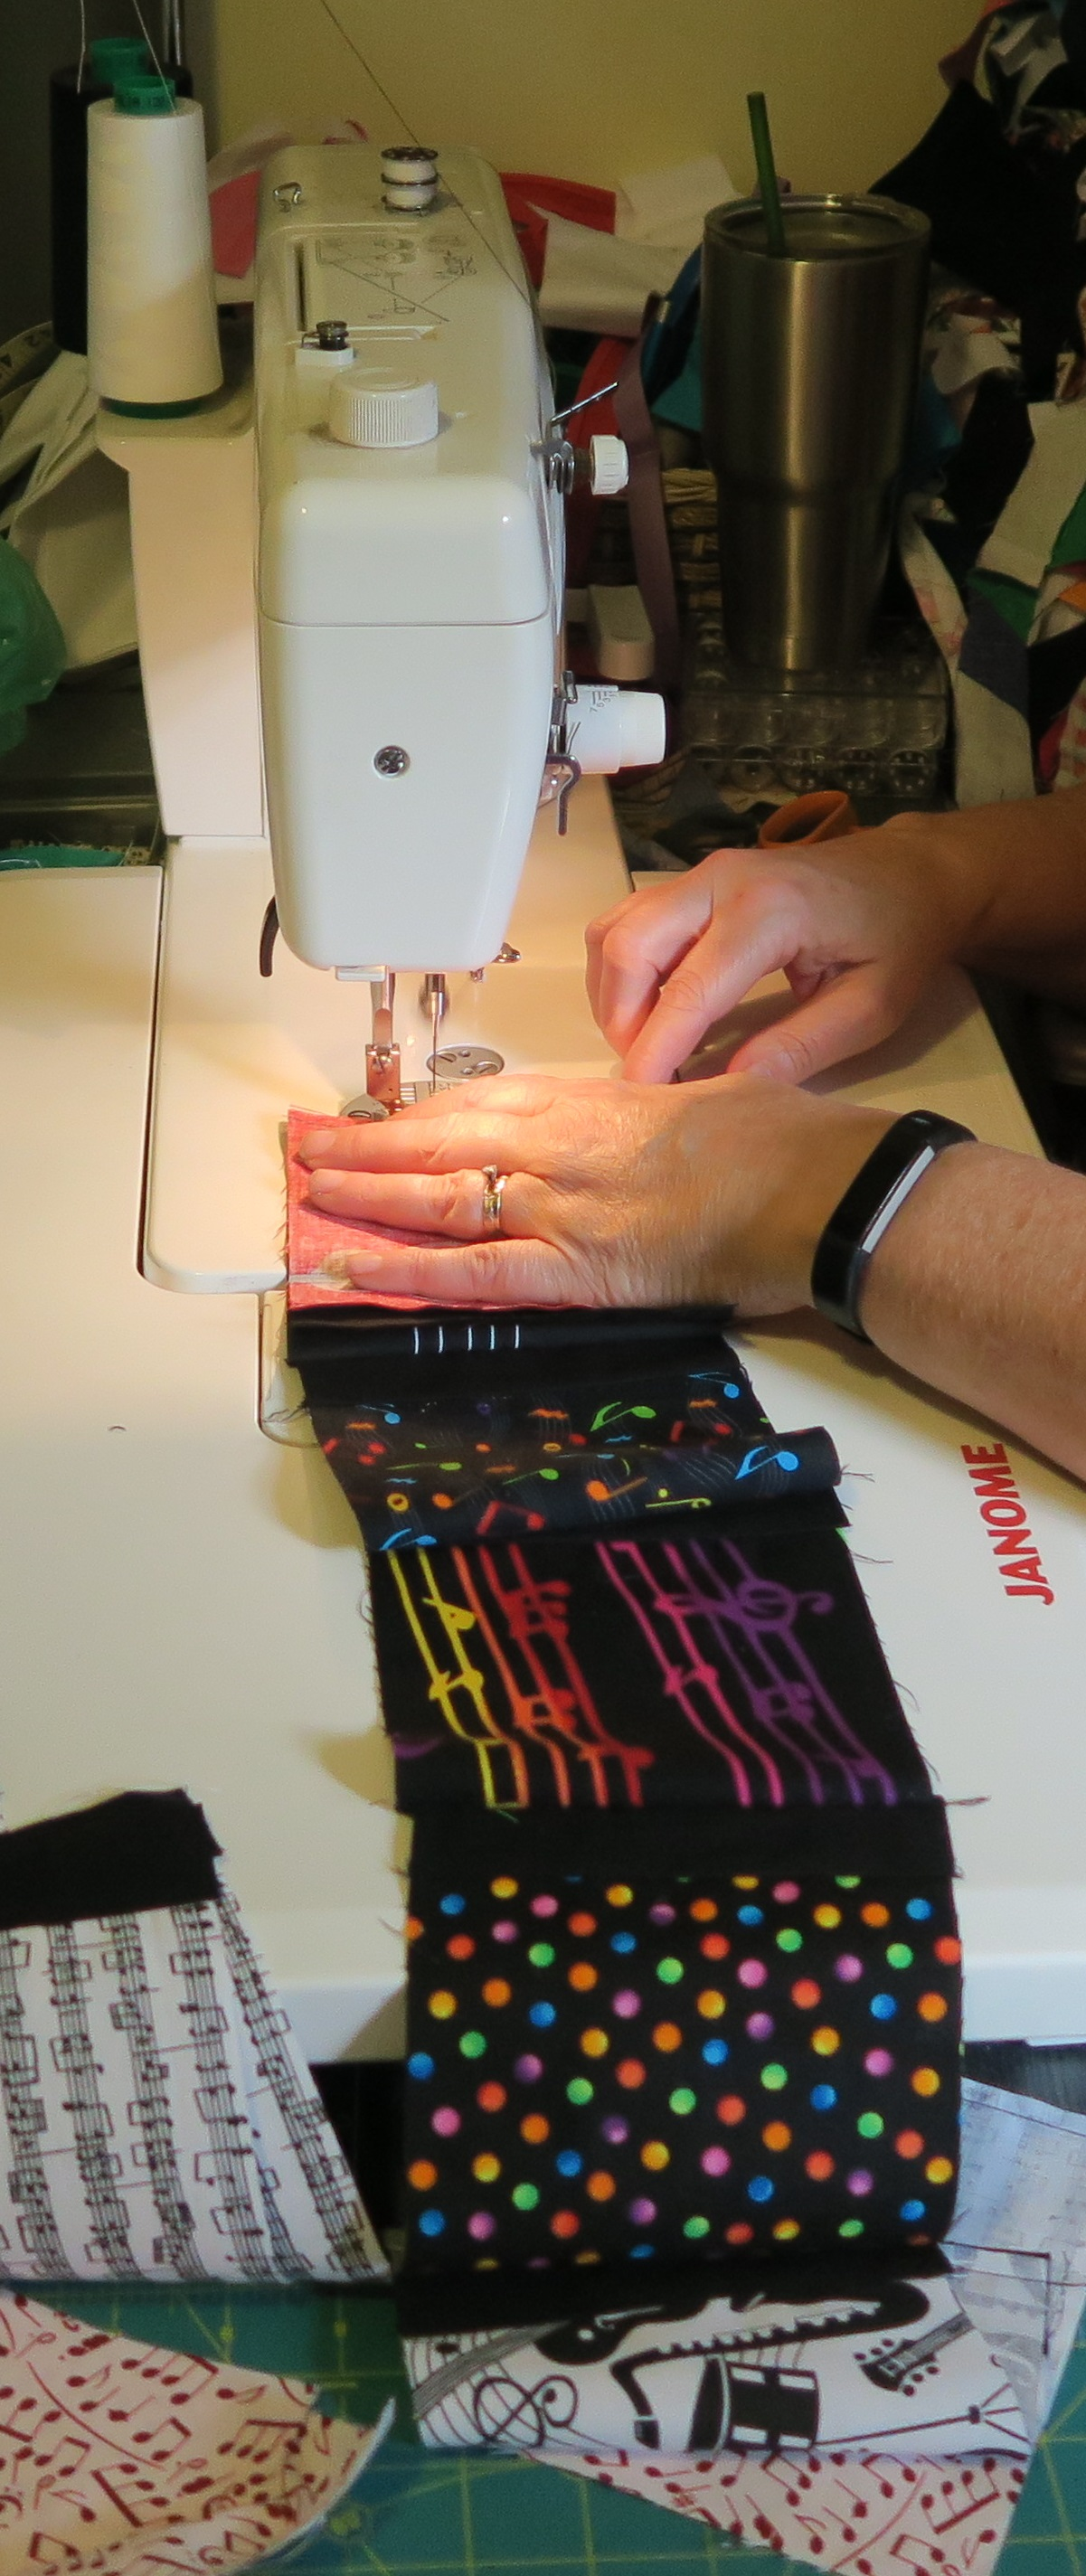 Rachael sewing the musical strips with a white sewing machine. The strip of fabric extends beyond the length of the sewing machine